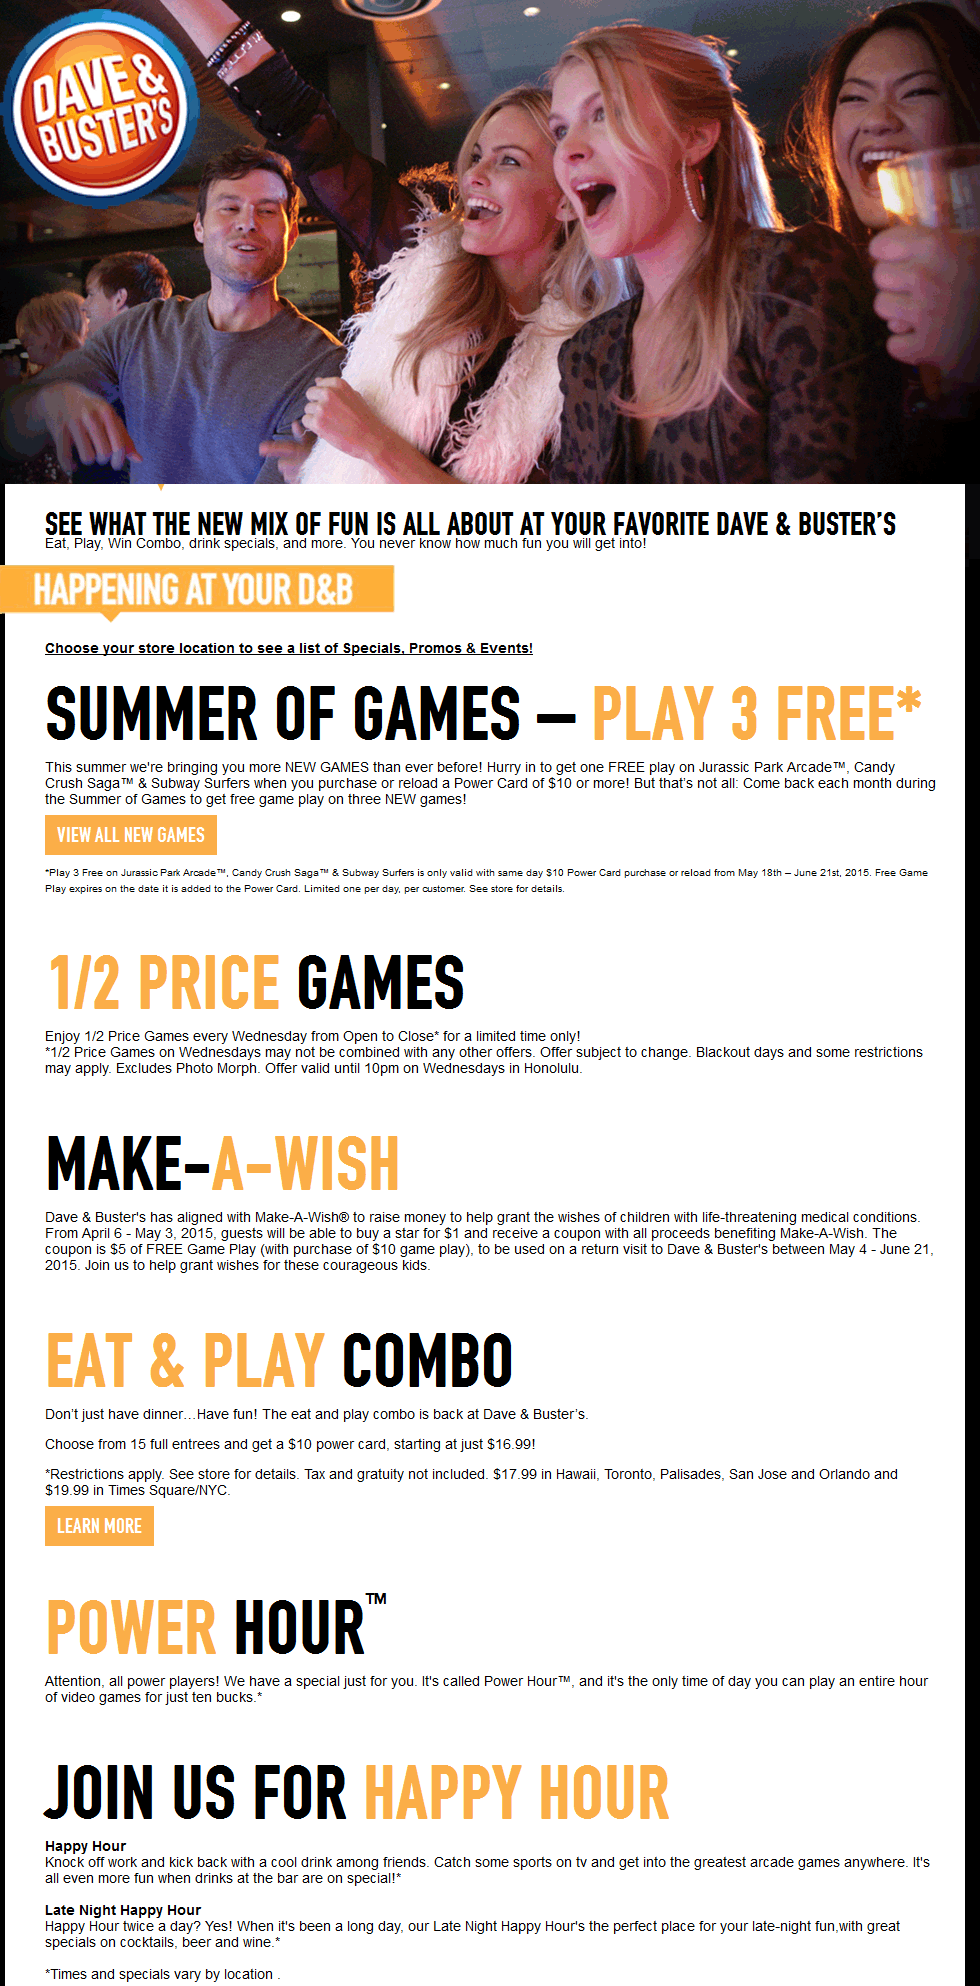 Dave & Busters Coupon May 2017 3 free games with your power card & more at Dave & Busters restaurants